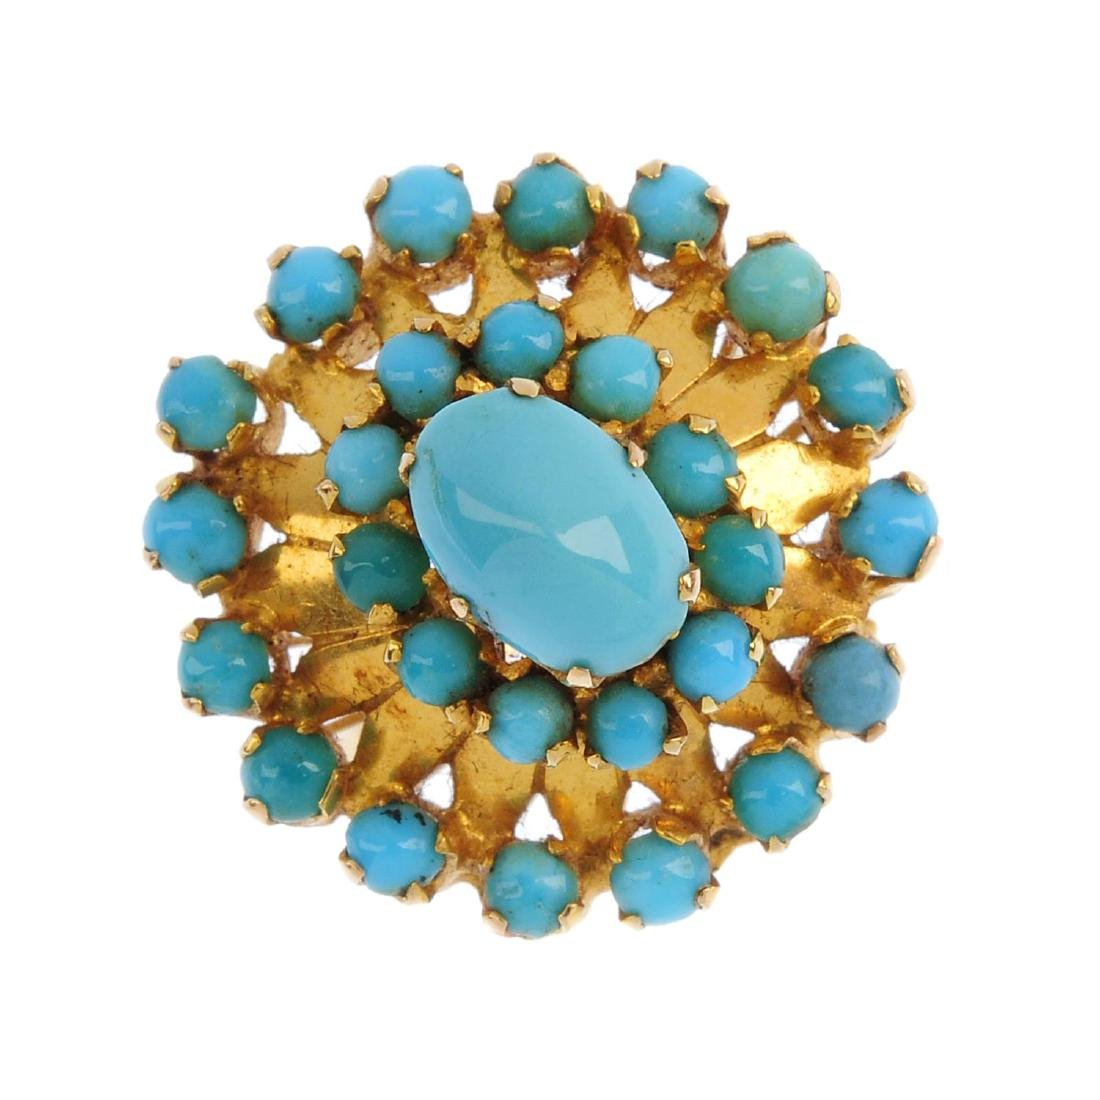 A turquoise floral ring. The oval and circular